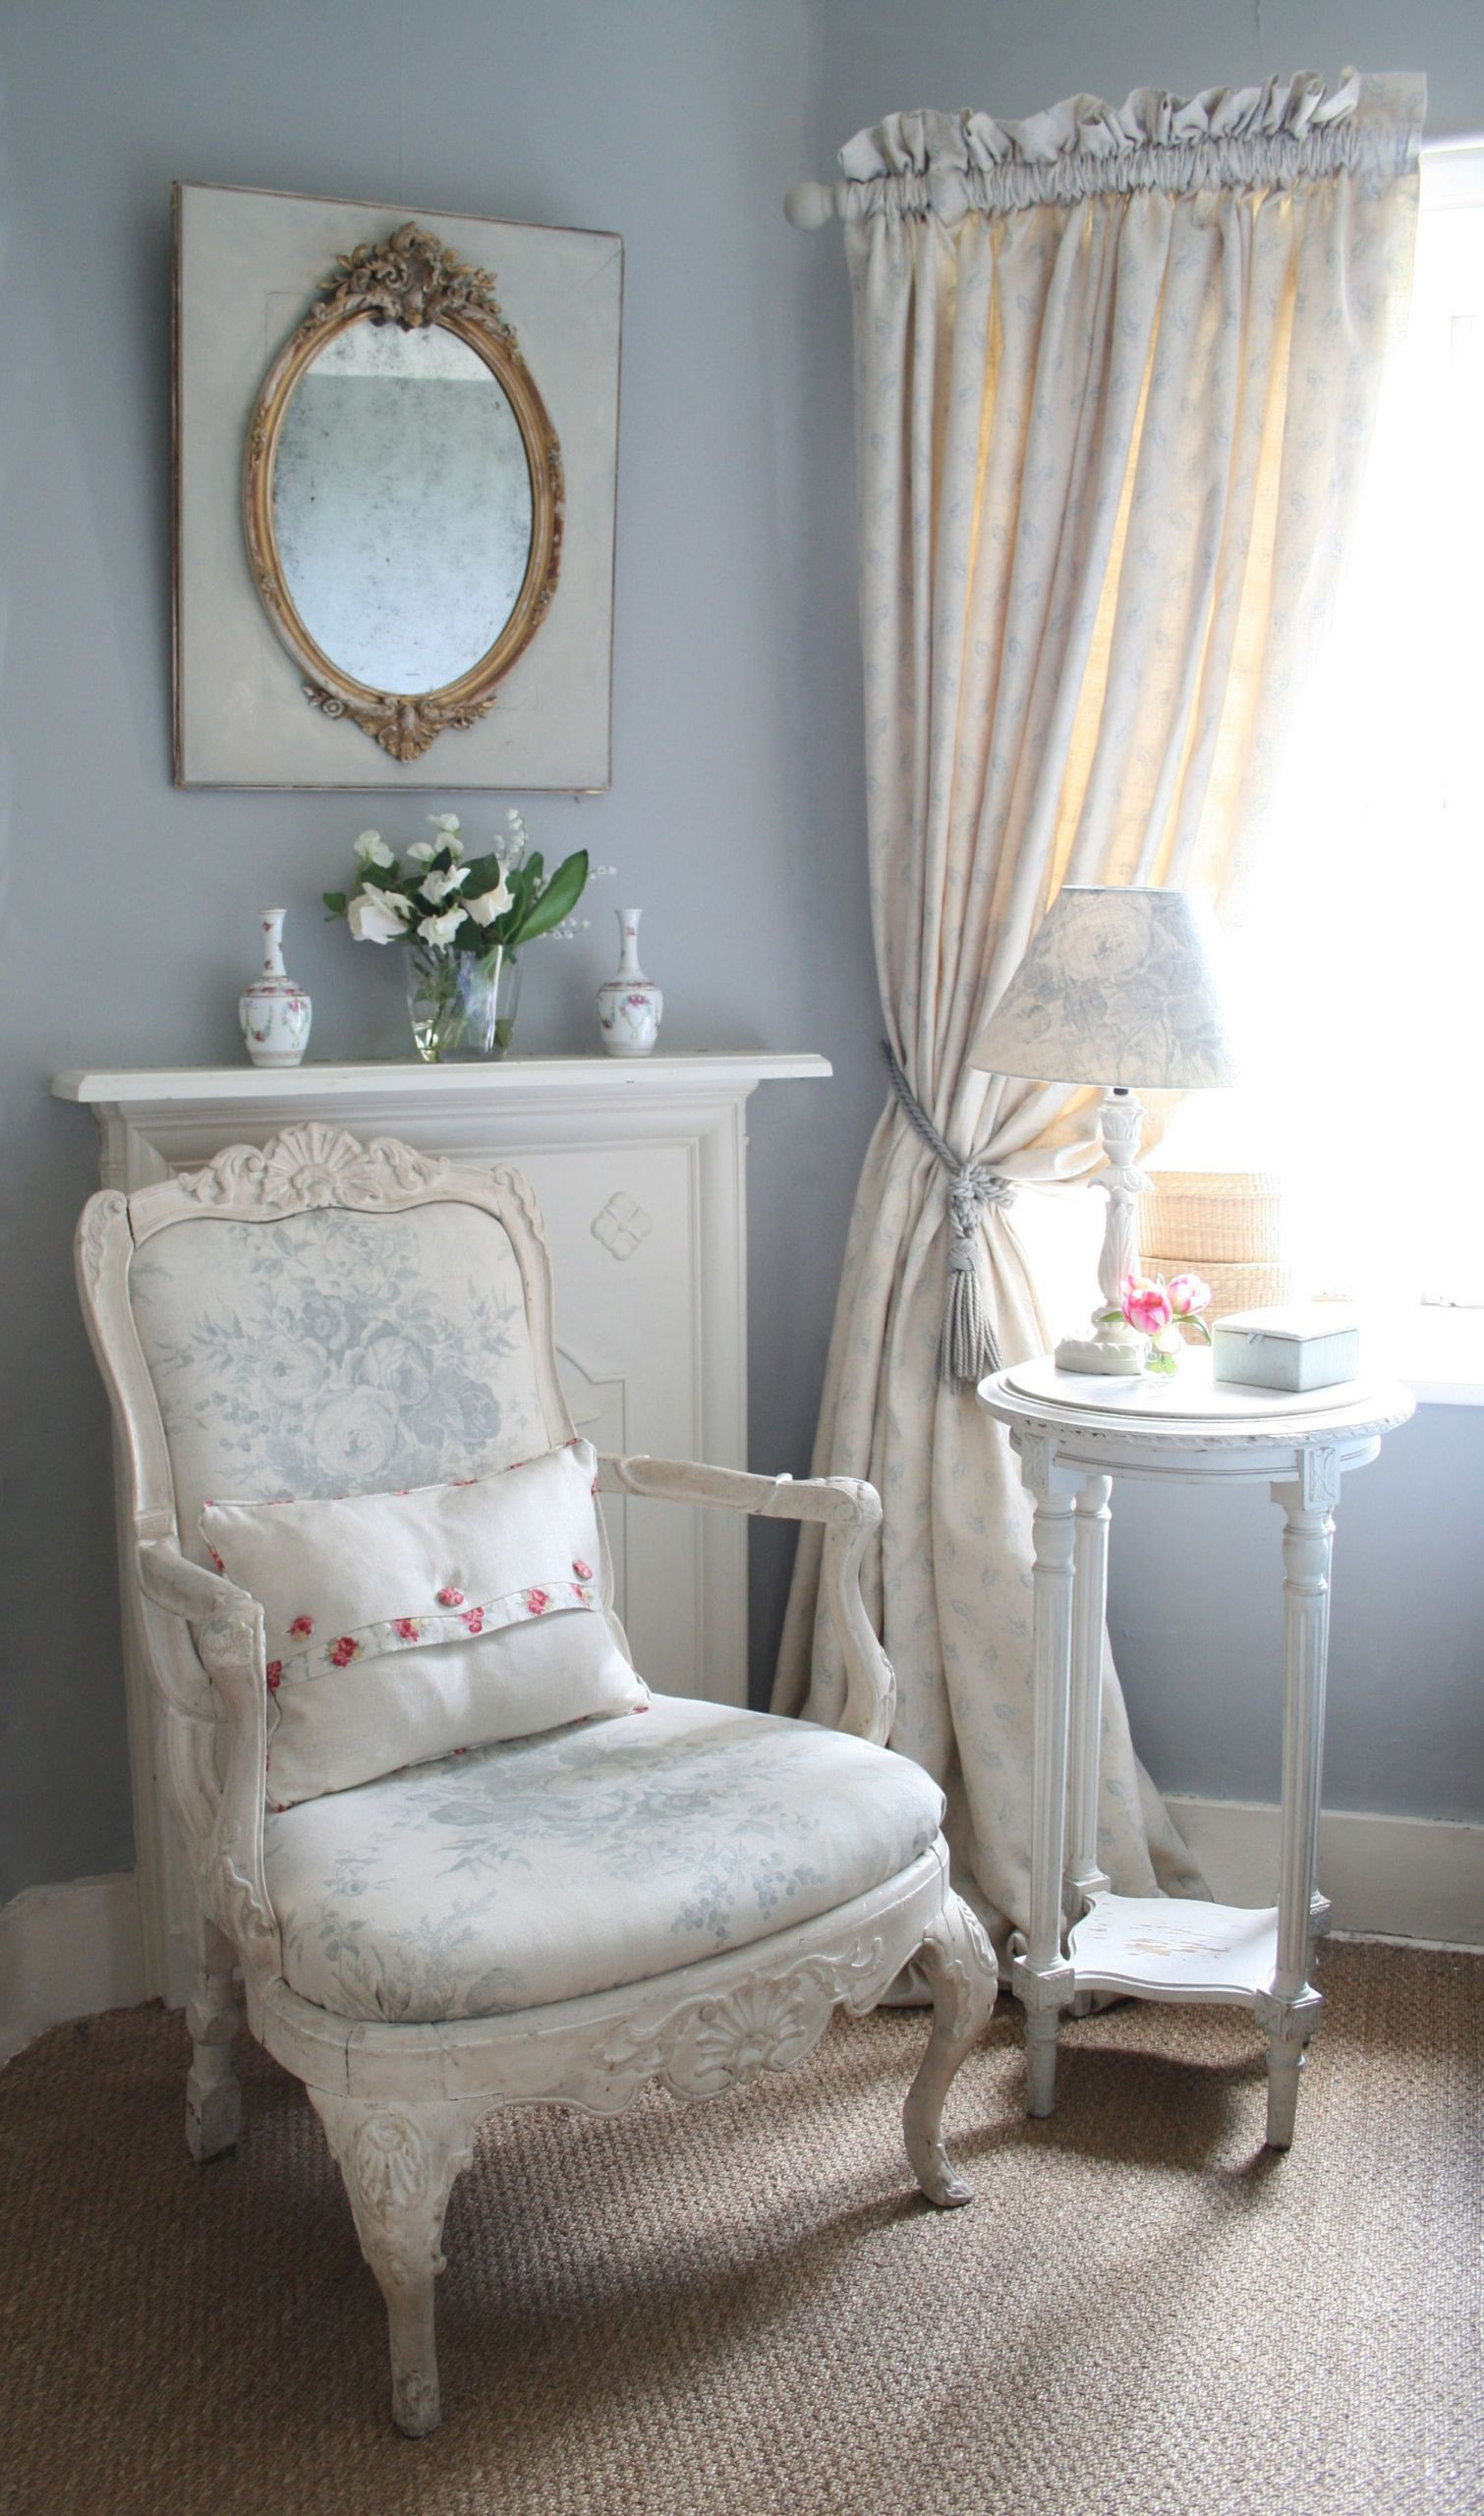 Shabby Chic Bedroom Chair  smokey blue grey with creamy chair in pretty floral note